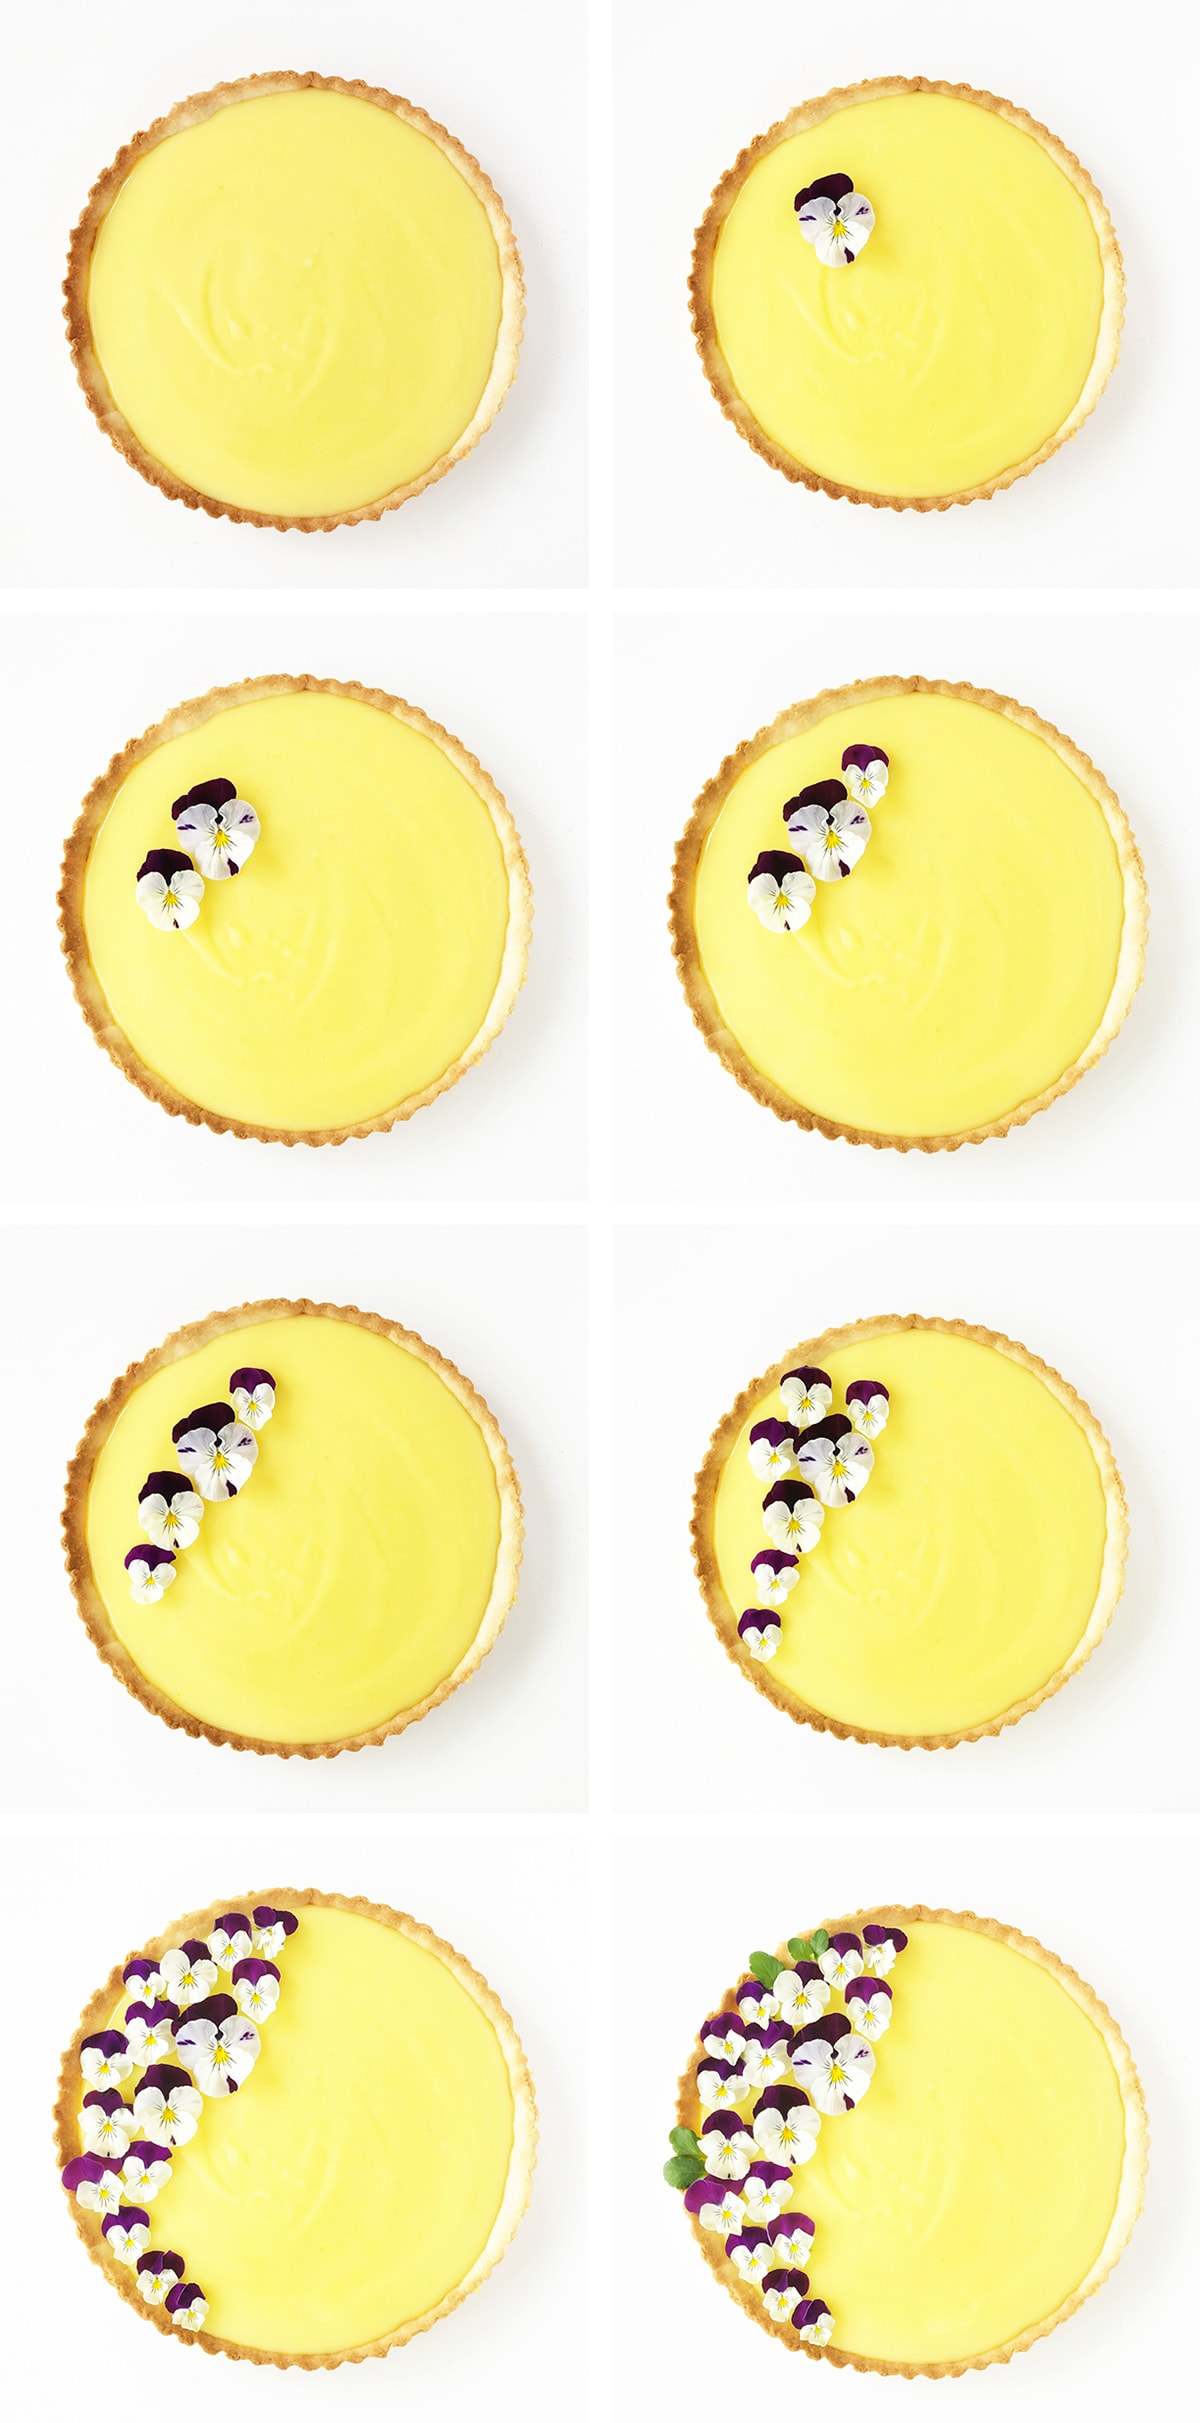 a Lemon Tart with a Shortbread Cookie Crust is garnished with Pansies